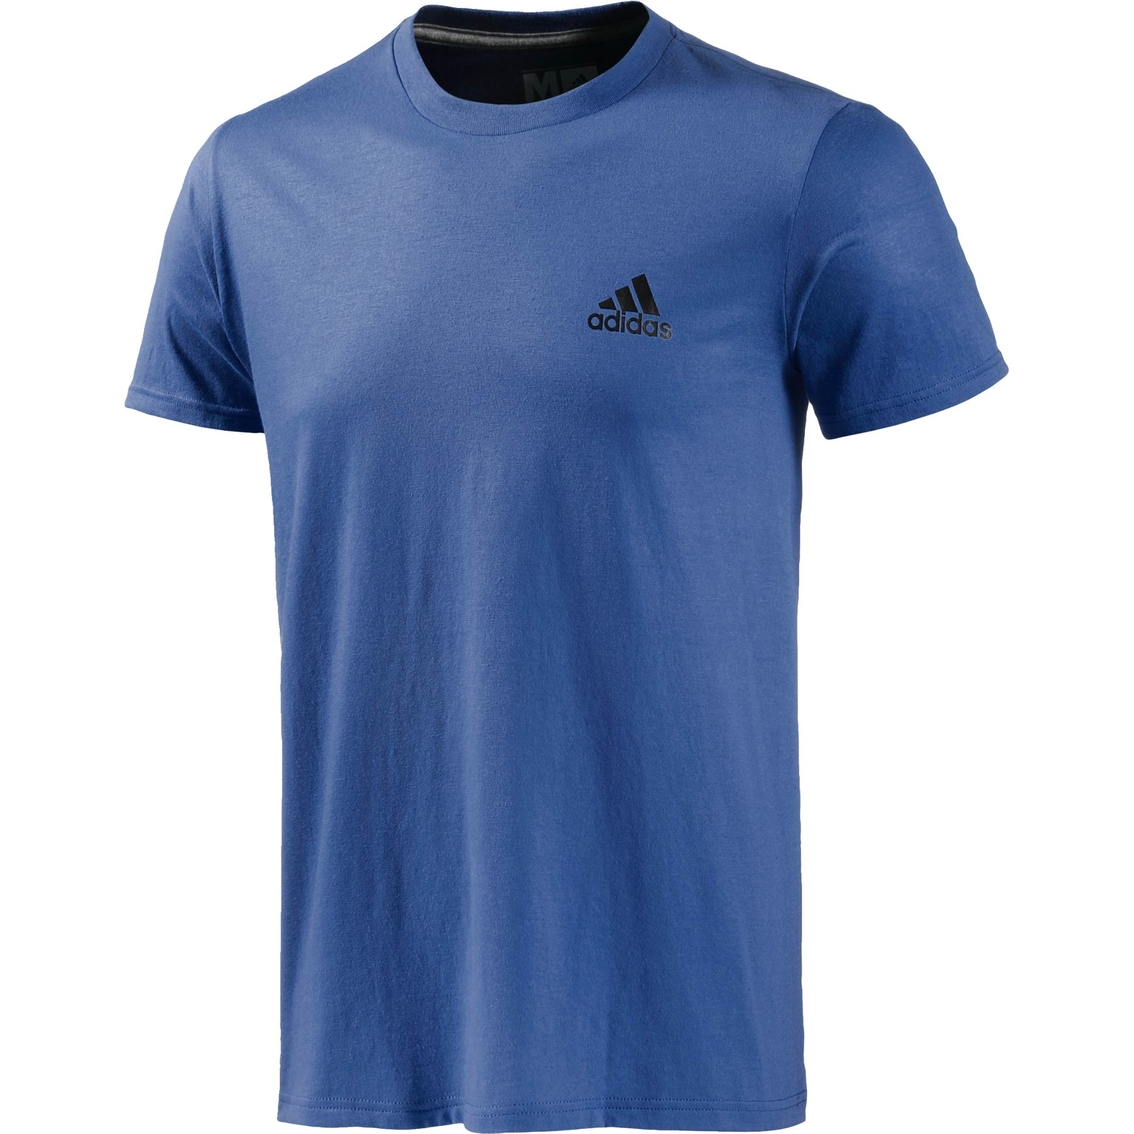 adidas go to performance crew tee shirts apparel shop the exchange. Black Bedroom Furniture Sets. Home Design Ideas